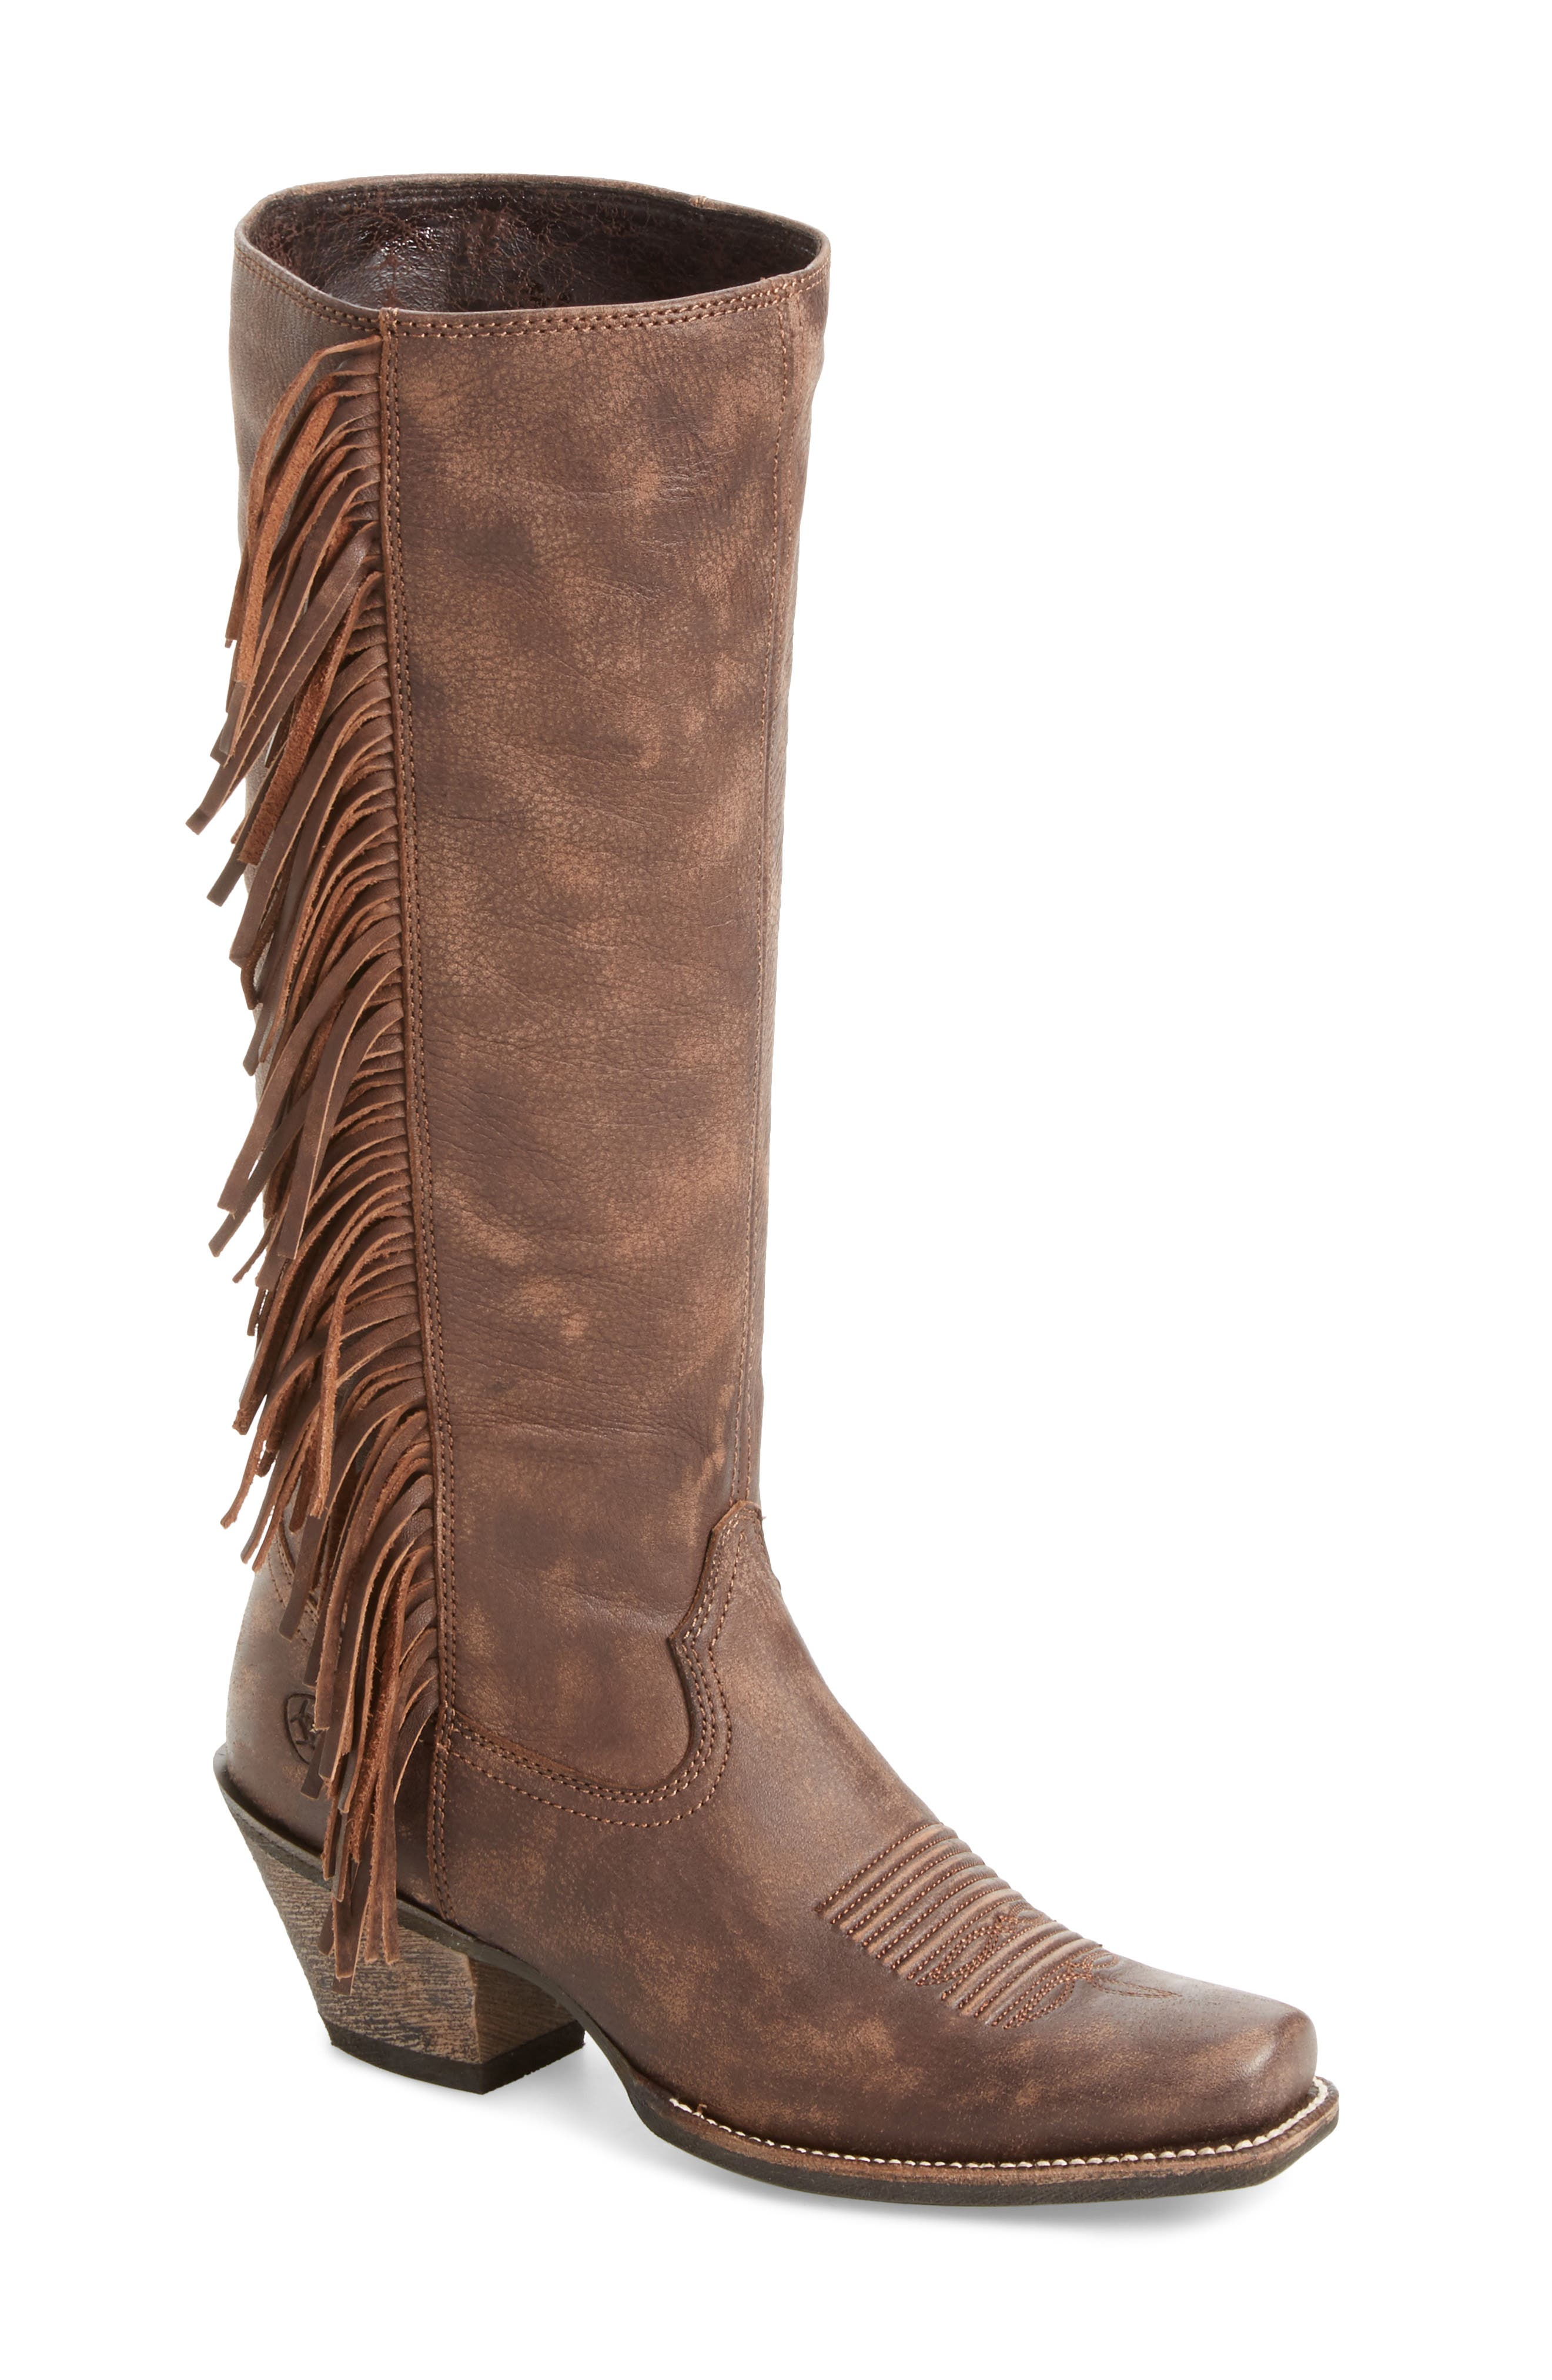 ARIAT Leyton Fringe Western Boot in Tack Room Chocolate Leather